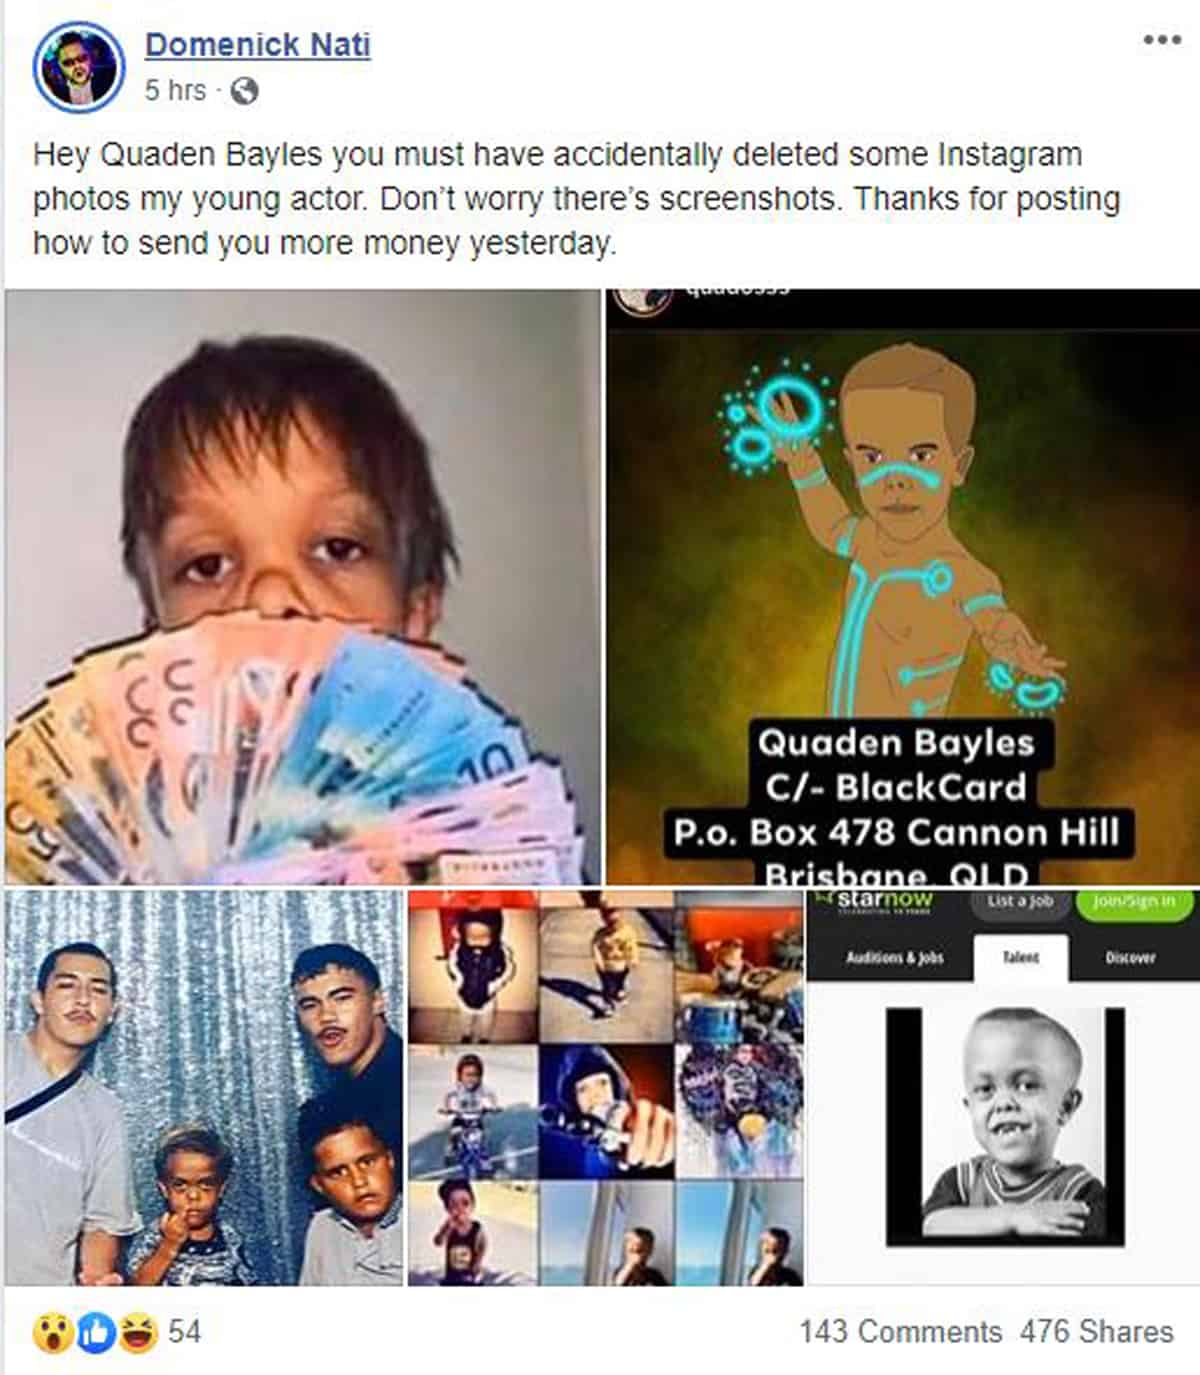 Rumor buster: Quaden Bayles is not 18, as bullied boy gains sympathy from the world